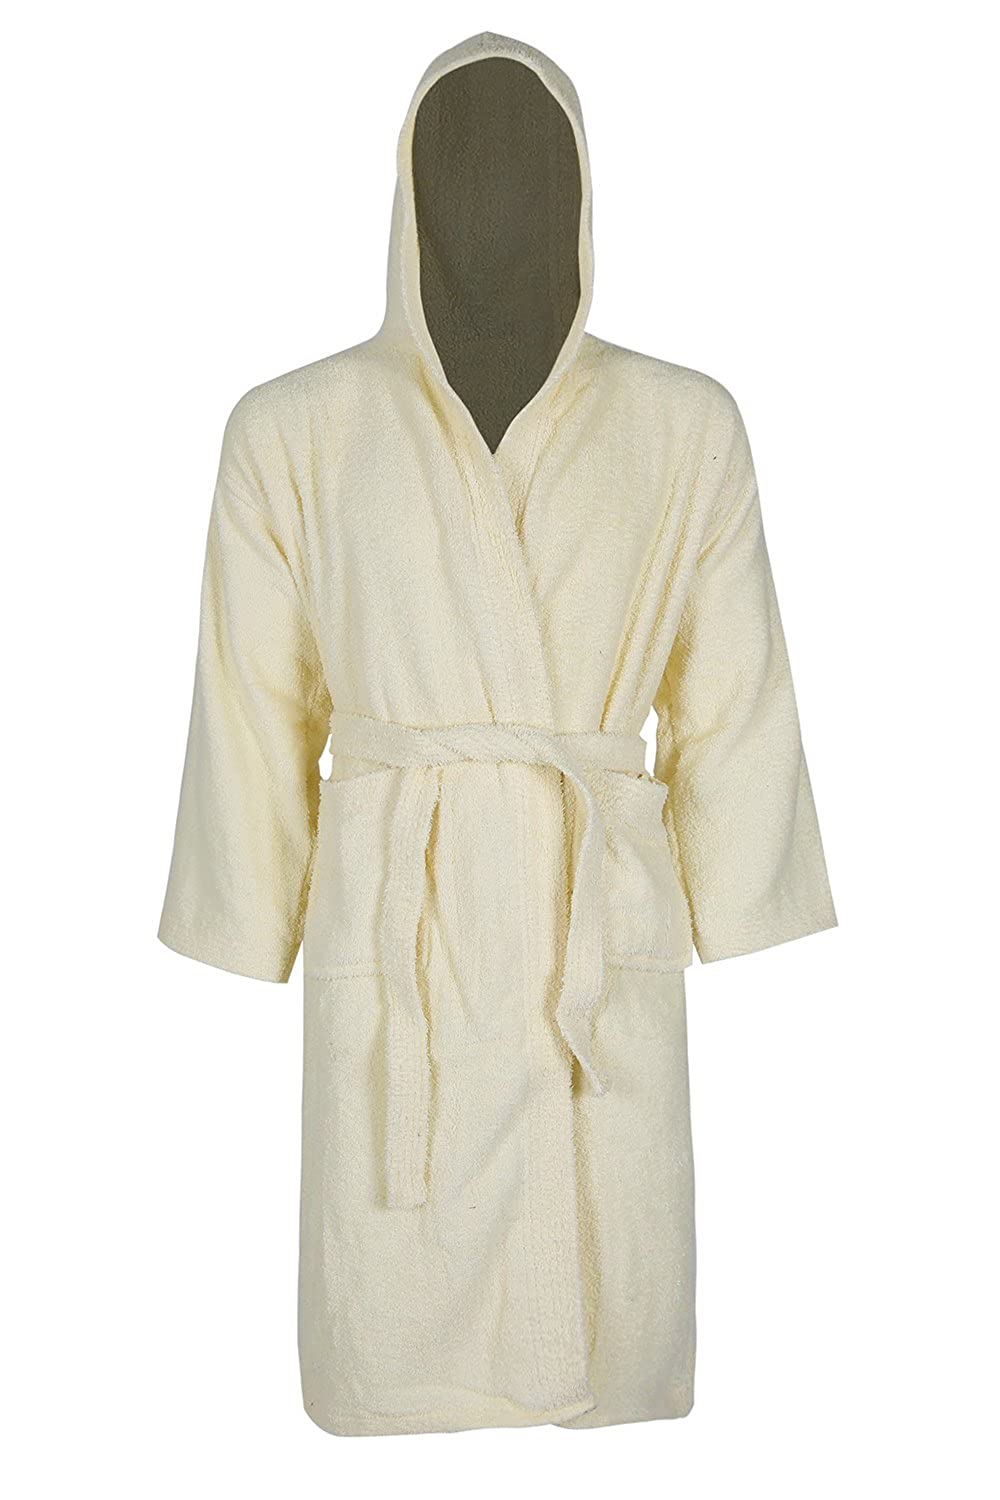 Linen Galaxy Women Ladies Cream Colour Girls 100% Egyptian Cotton Terry  Towelling Bath Robe Hooded Soft Dressing Gown S M  Amazon.co.uk  Clothing 0560b59bf